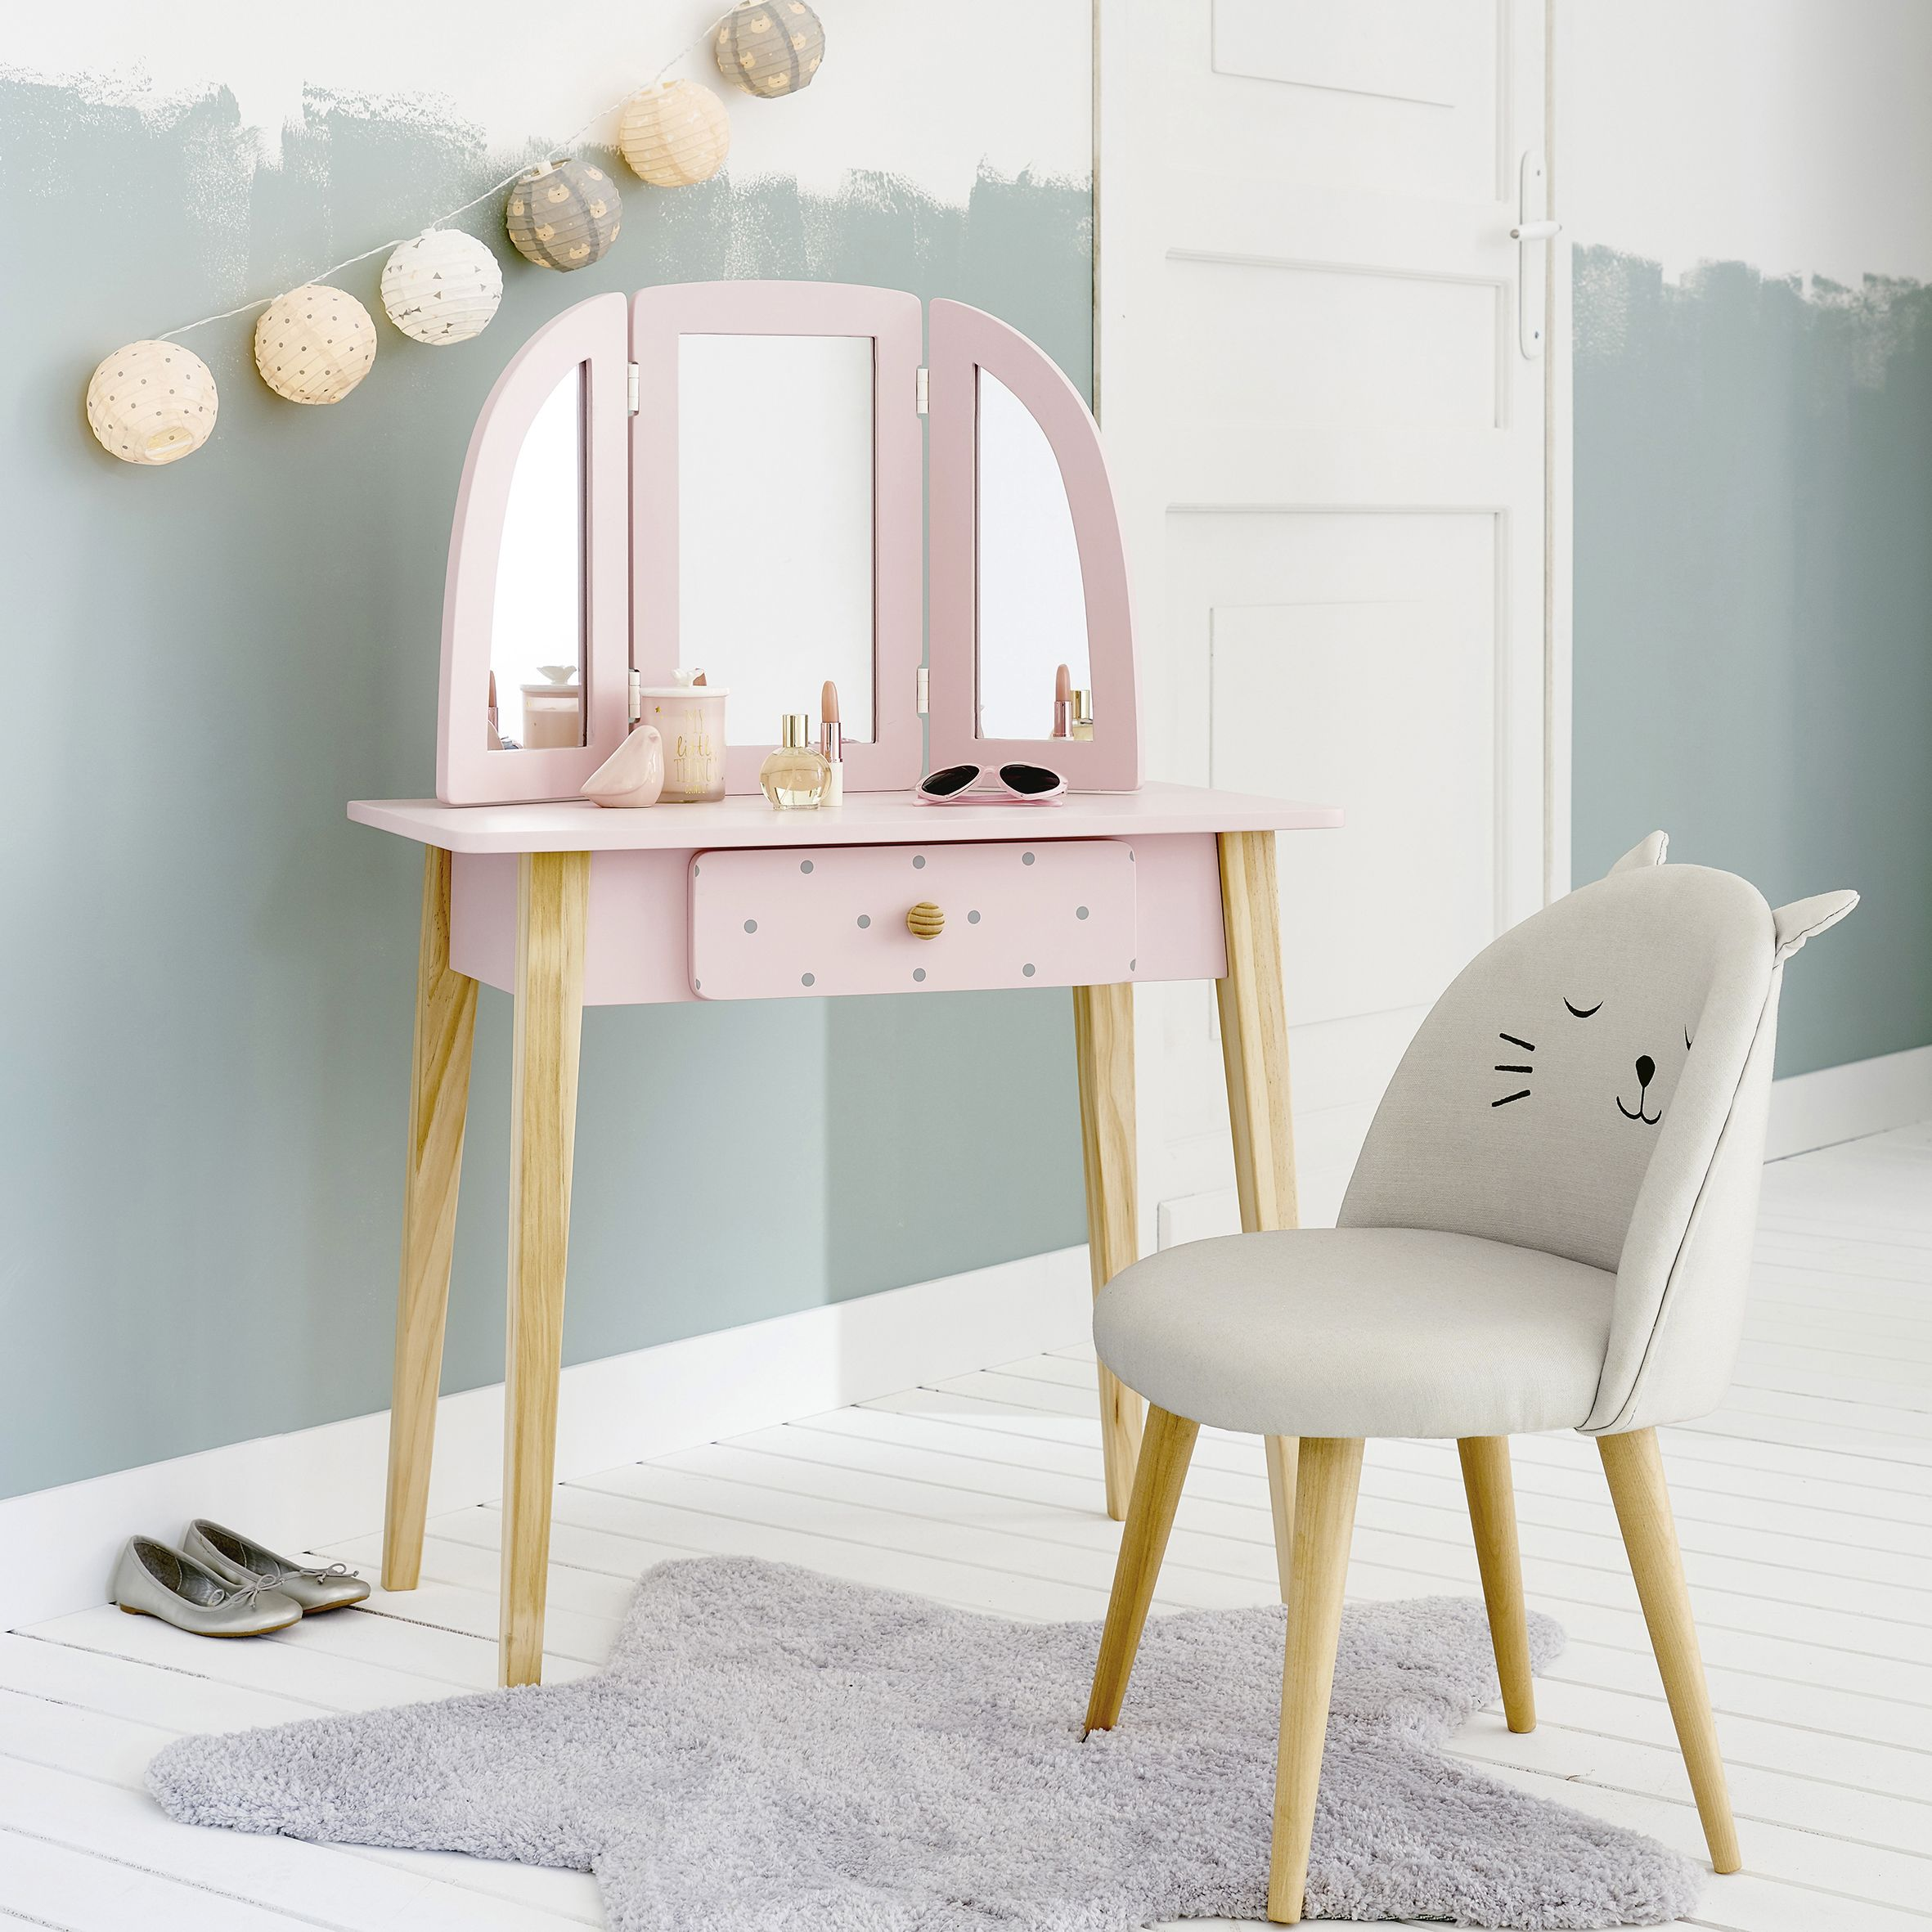 Dans Ce Coin Bureau De Chambre De Fille Ado J Adore La Chaise Grise Confortable Chat De Style Scand Girls Furniture Childrens Vanity Table Kids Dressing Table